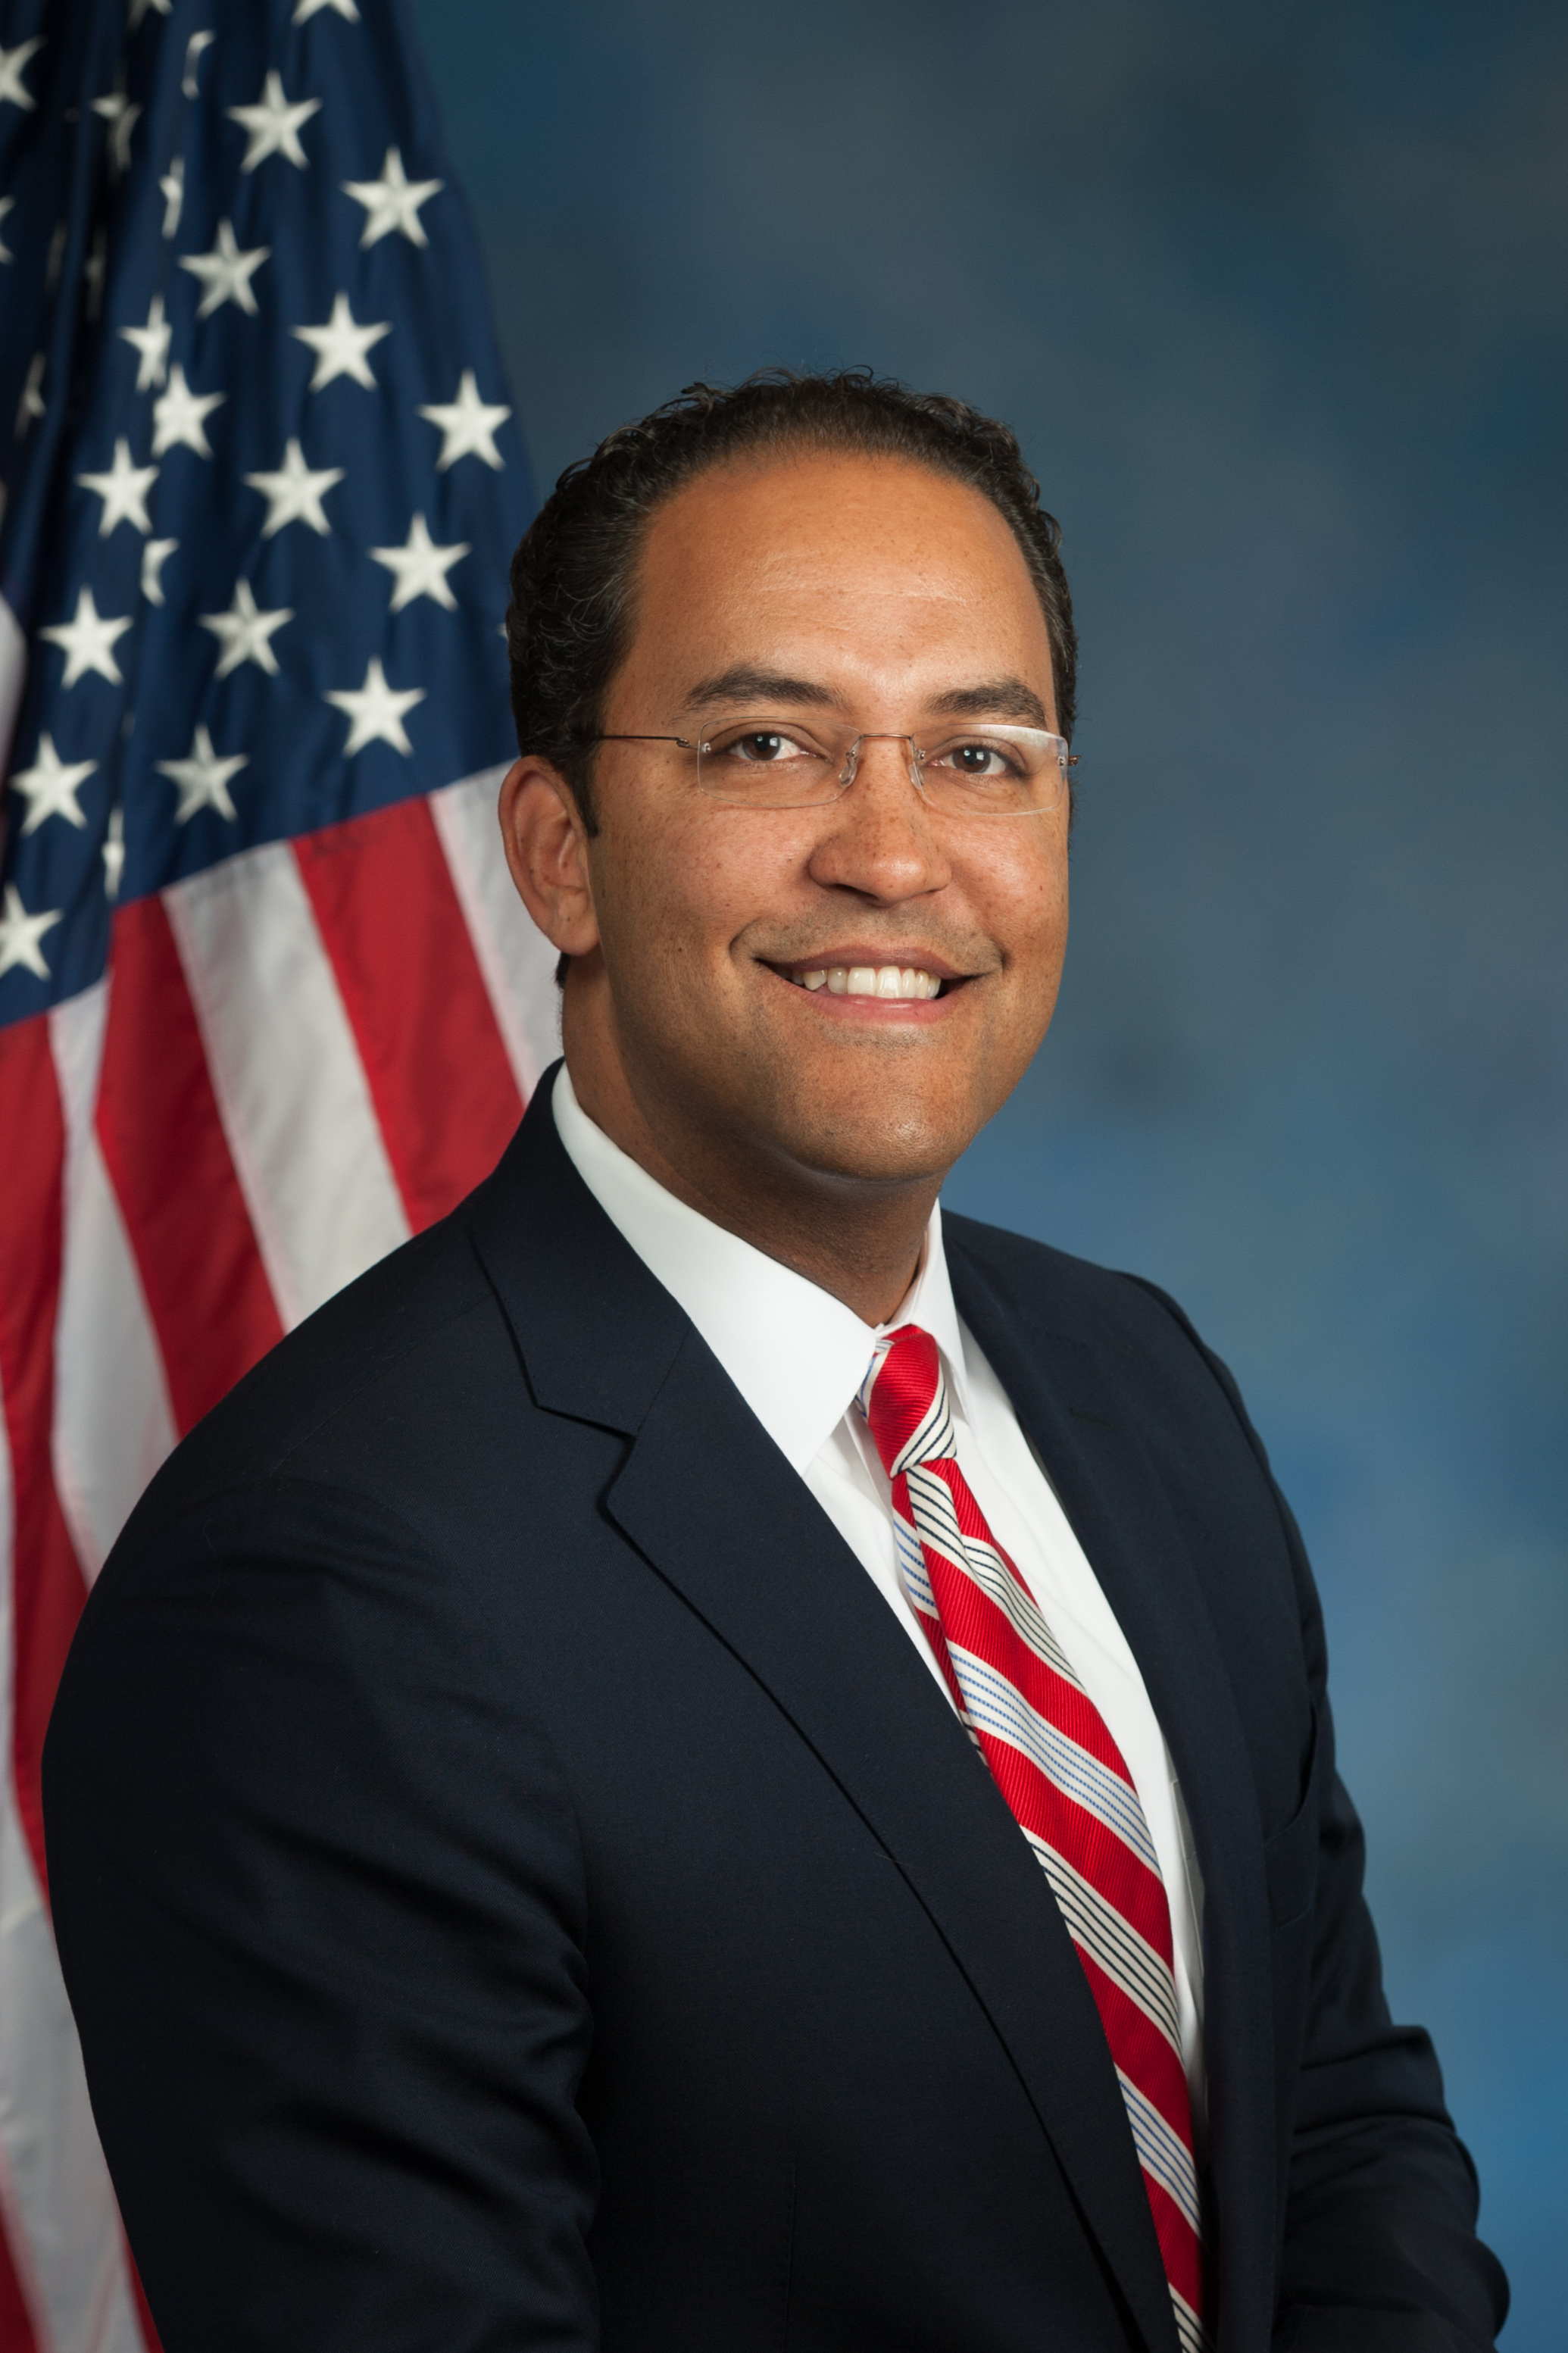 Event - Virtual Conversation with Congressman Will Hurd